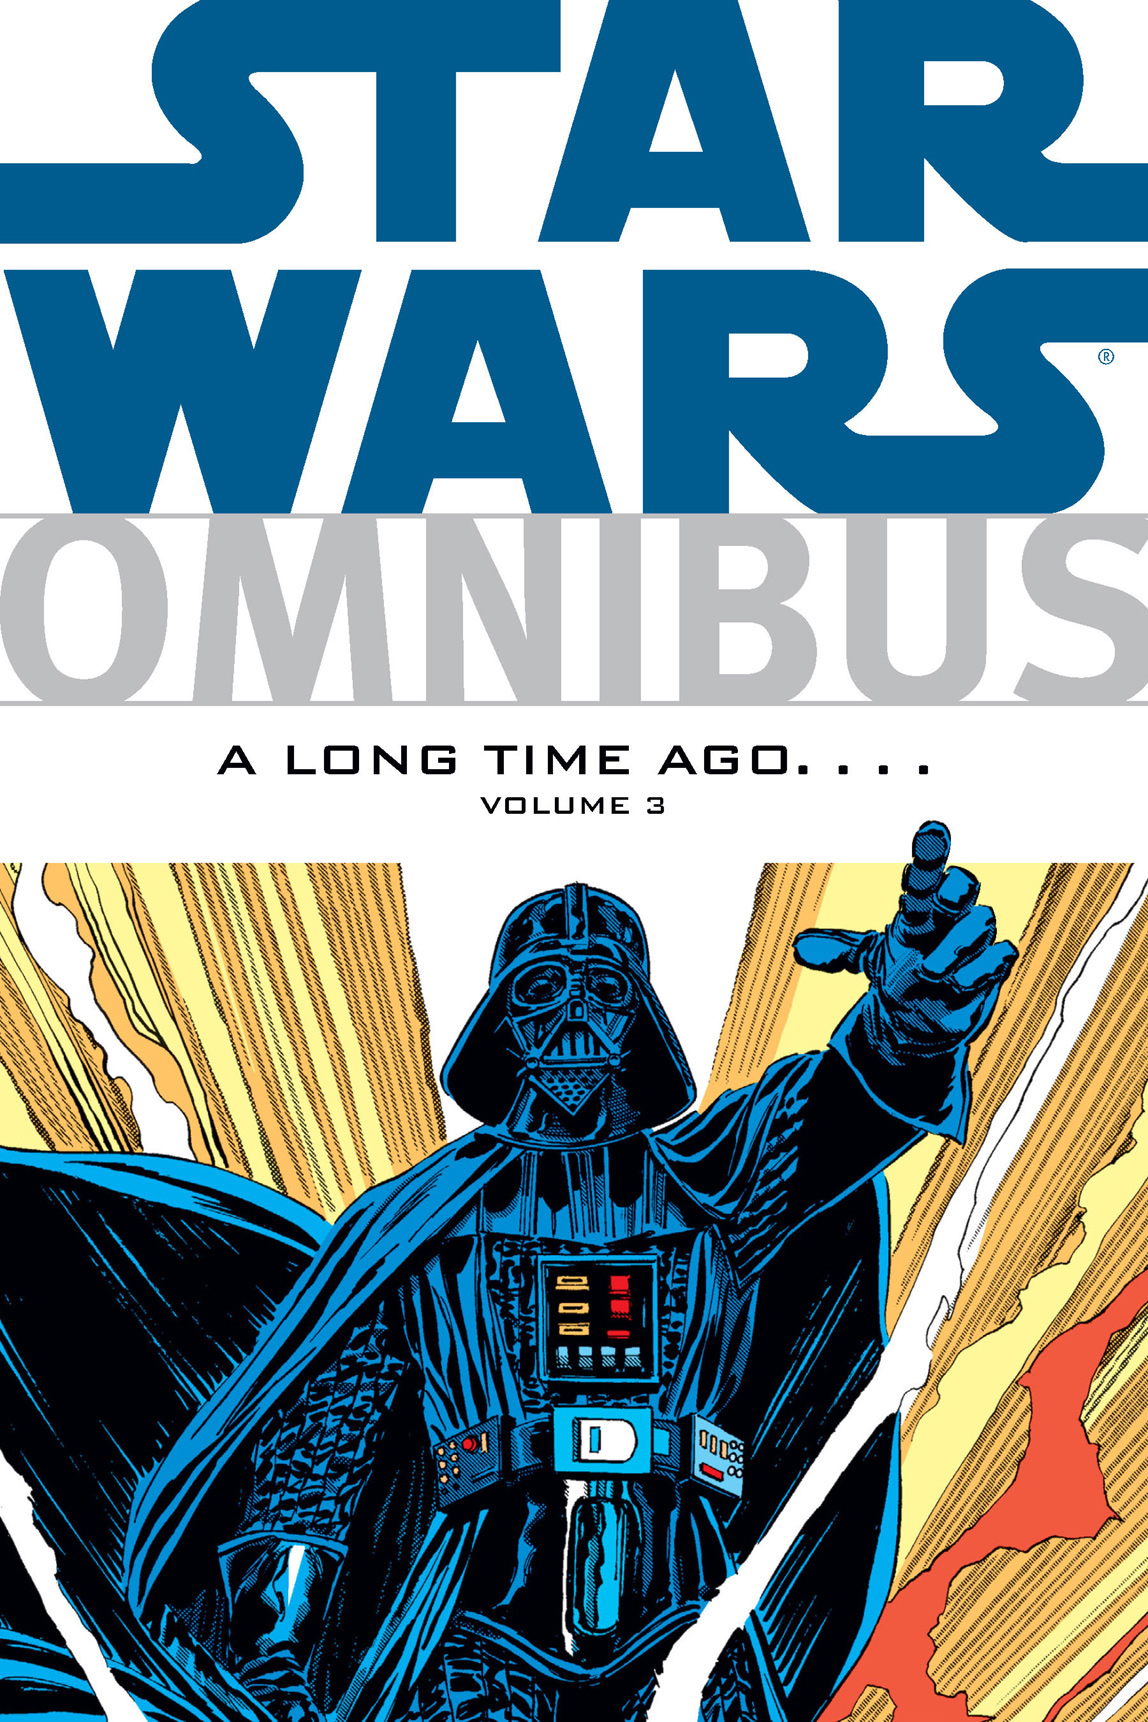 Star Wars Omnibus: A Long Time Ago. . . . Volume 3 By: Chris Claremont, Michael Fleisher, Archie Goodwin, David Michelinie, Walter Simonson, Walter Simonson (Penciller), Al Williamson (Penciller), Tom Palmer (Inker)